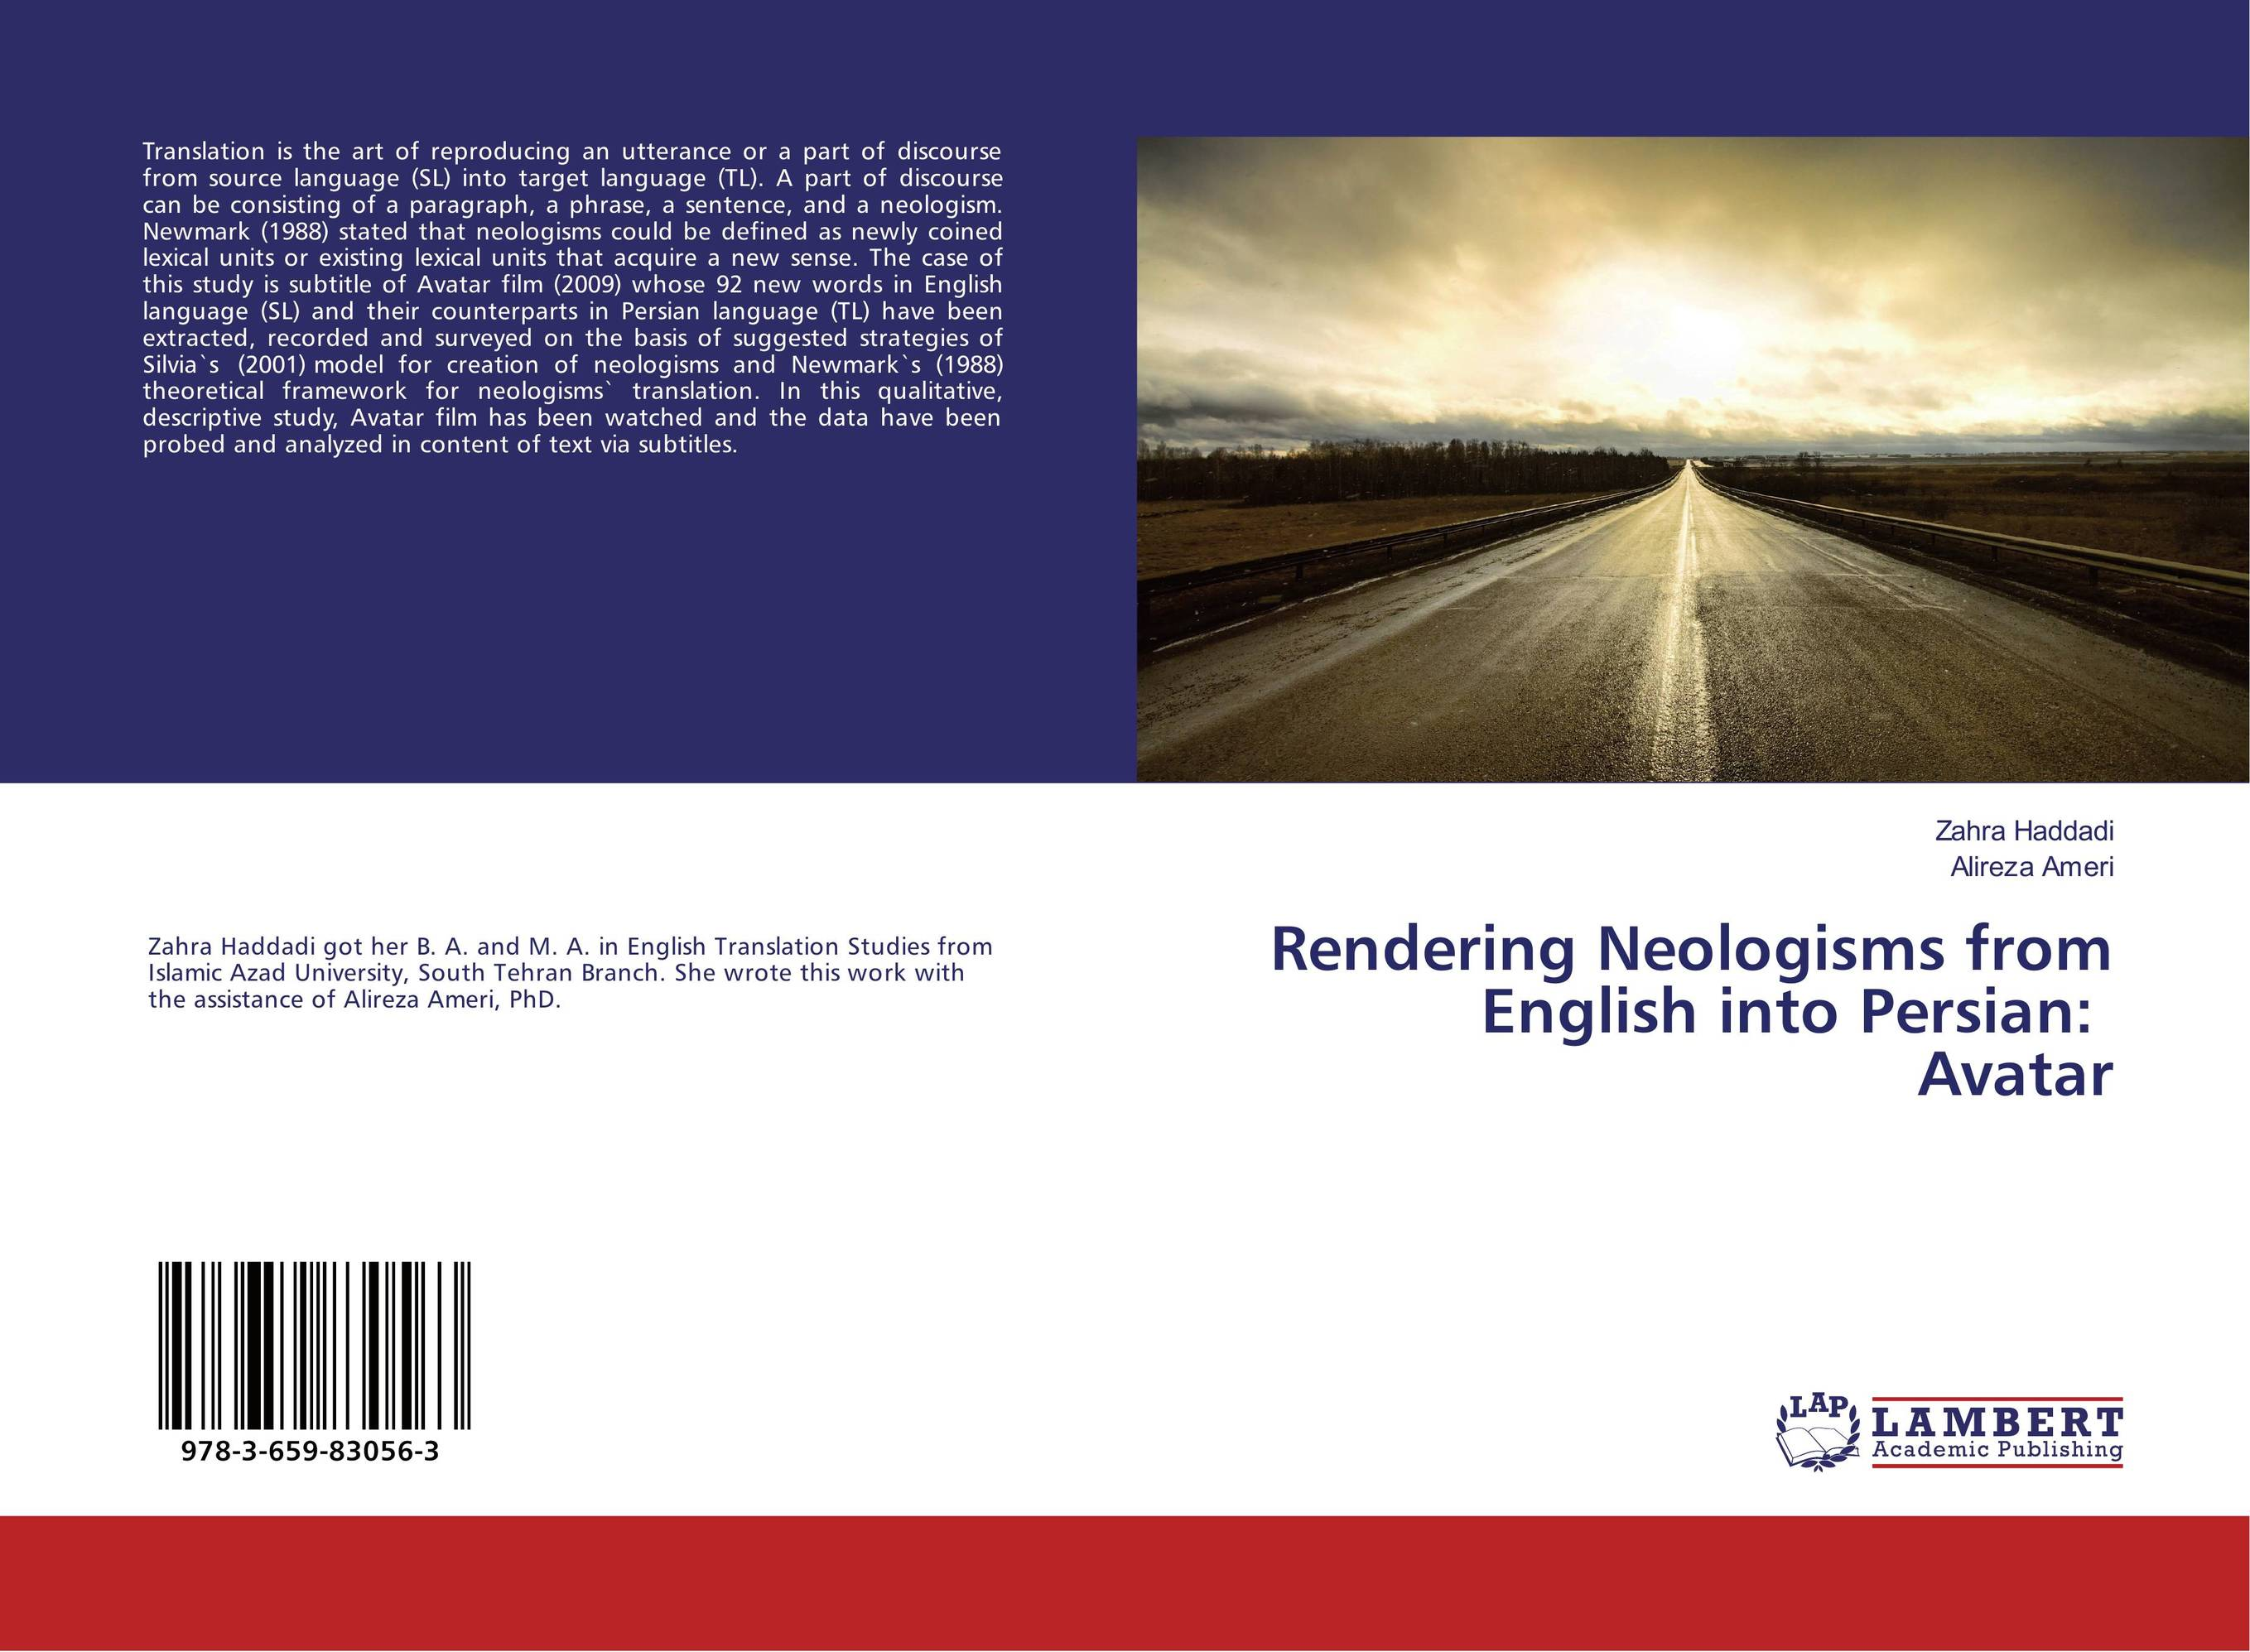 Rendering Neologisms from English into Persian: Avatar pooria alirezazadeh an analytical study of translation of stream of consciousness